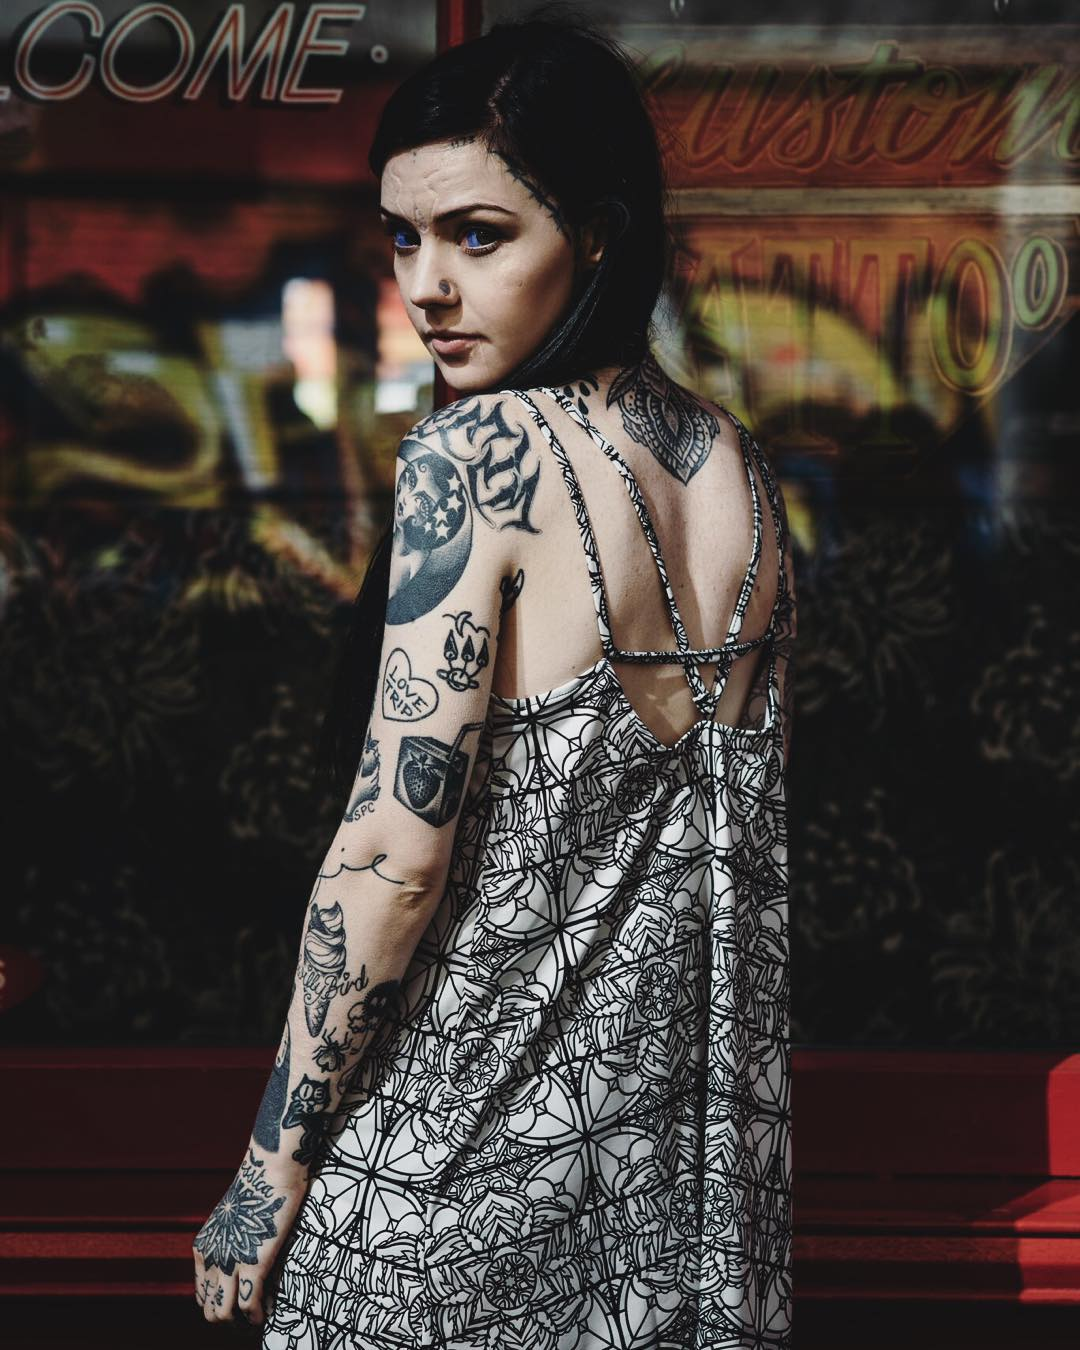 A Tattoo-Covered Alien Beauty Who Will Blow Your Mind 12